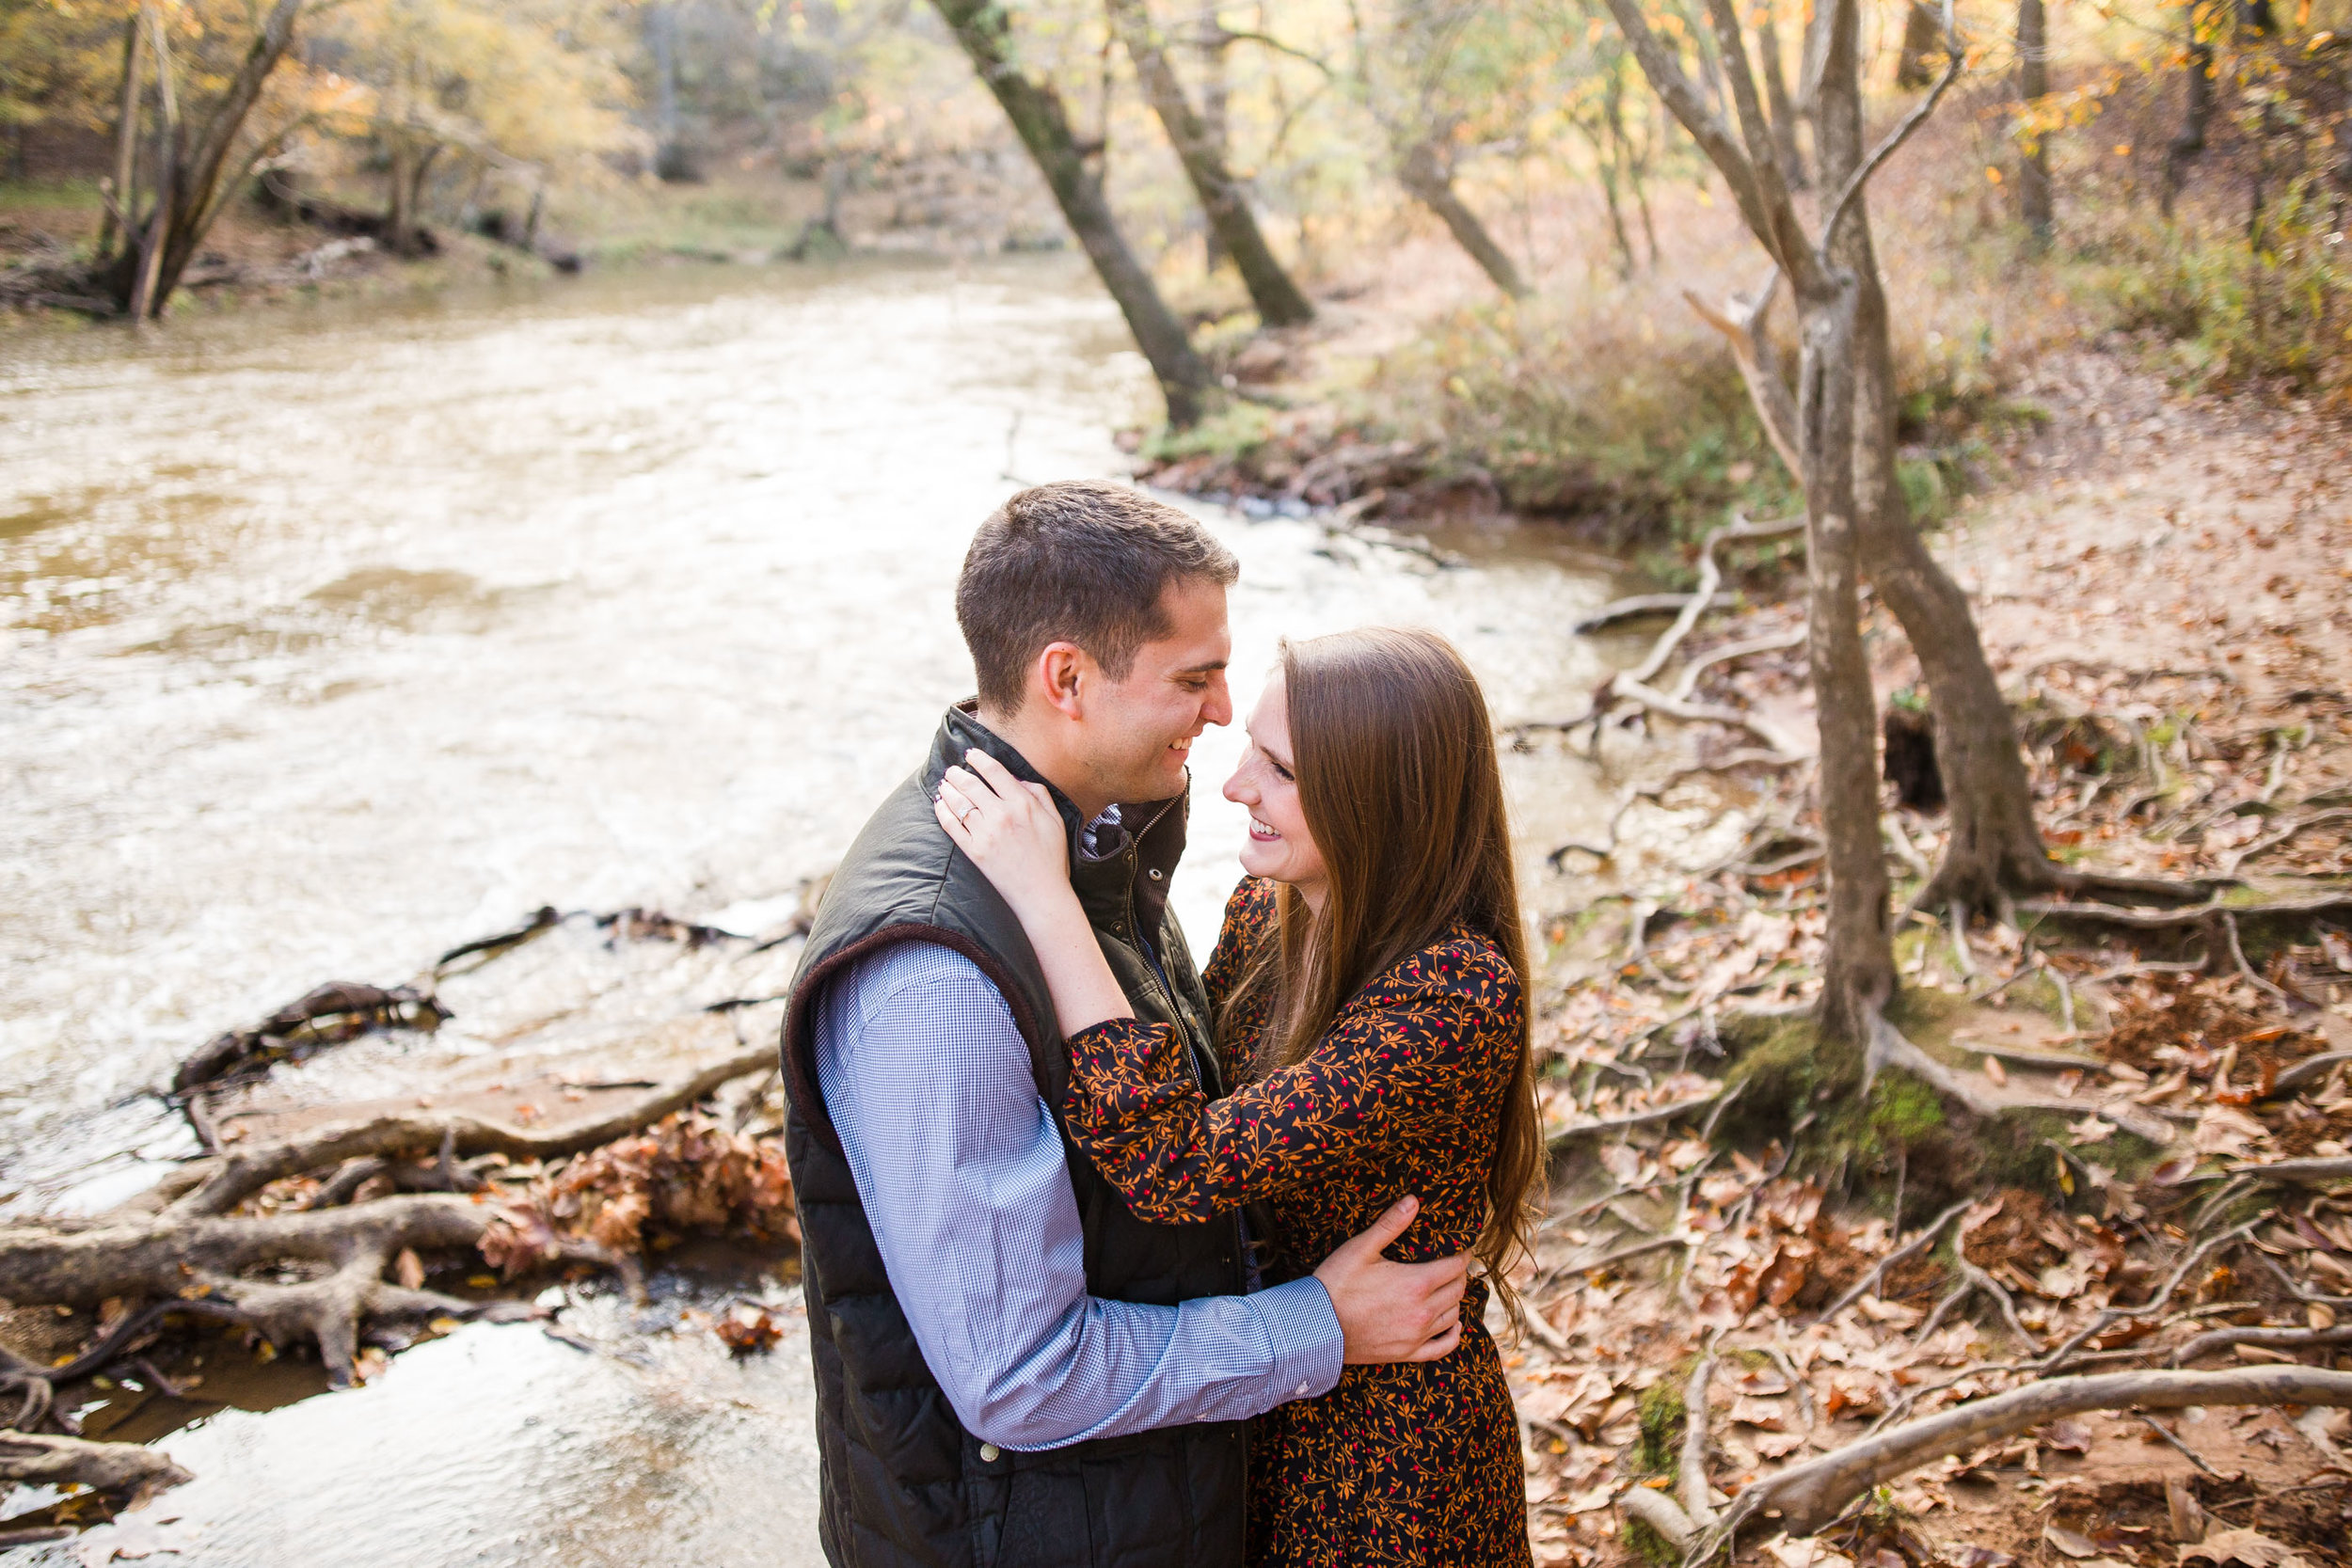 2018_11_07_michelle_francisco_engagement_eno_river-5262.jpg